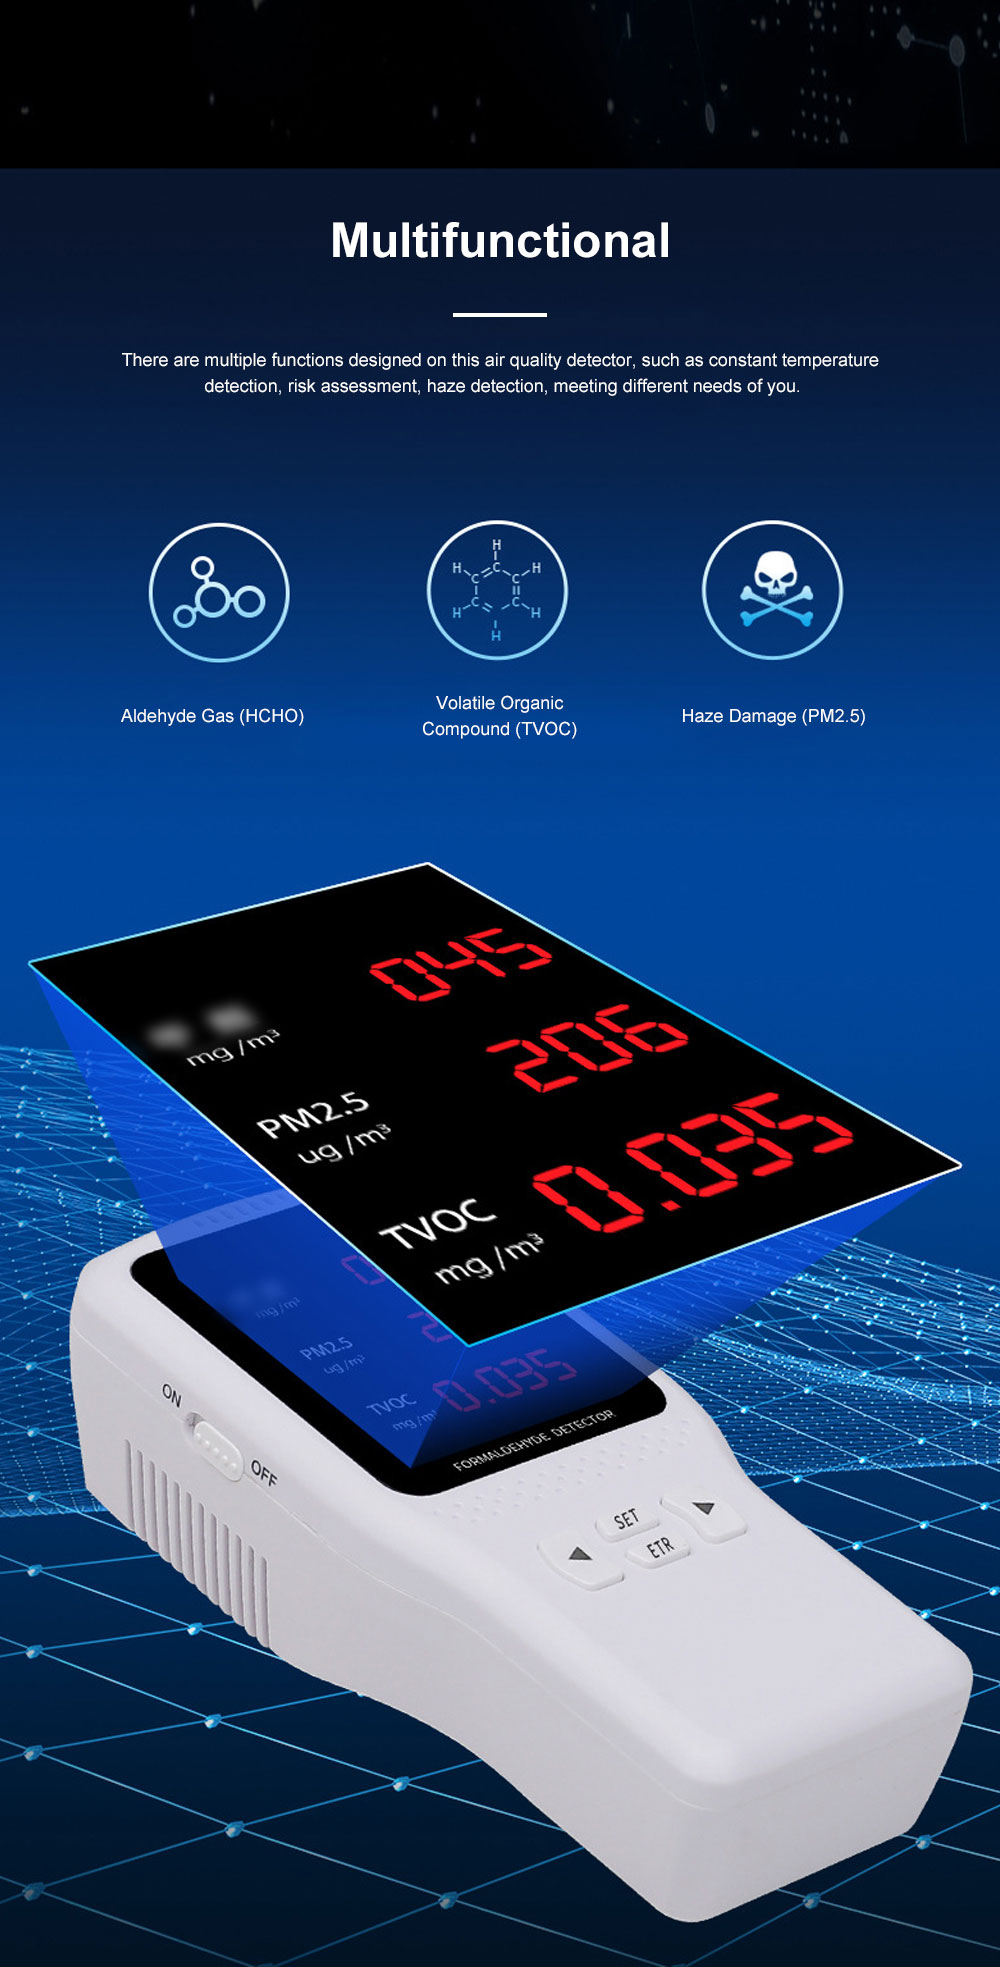 JBL Professional Stable Quick Household PM2.5 TVOC Formaldehyde Air Quality Detector with Intelligent Chip Large HD Screen 2